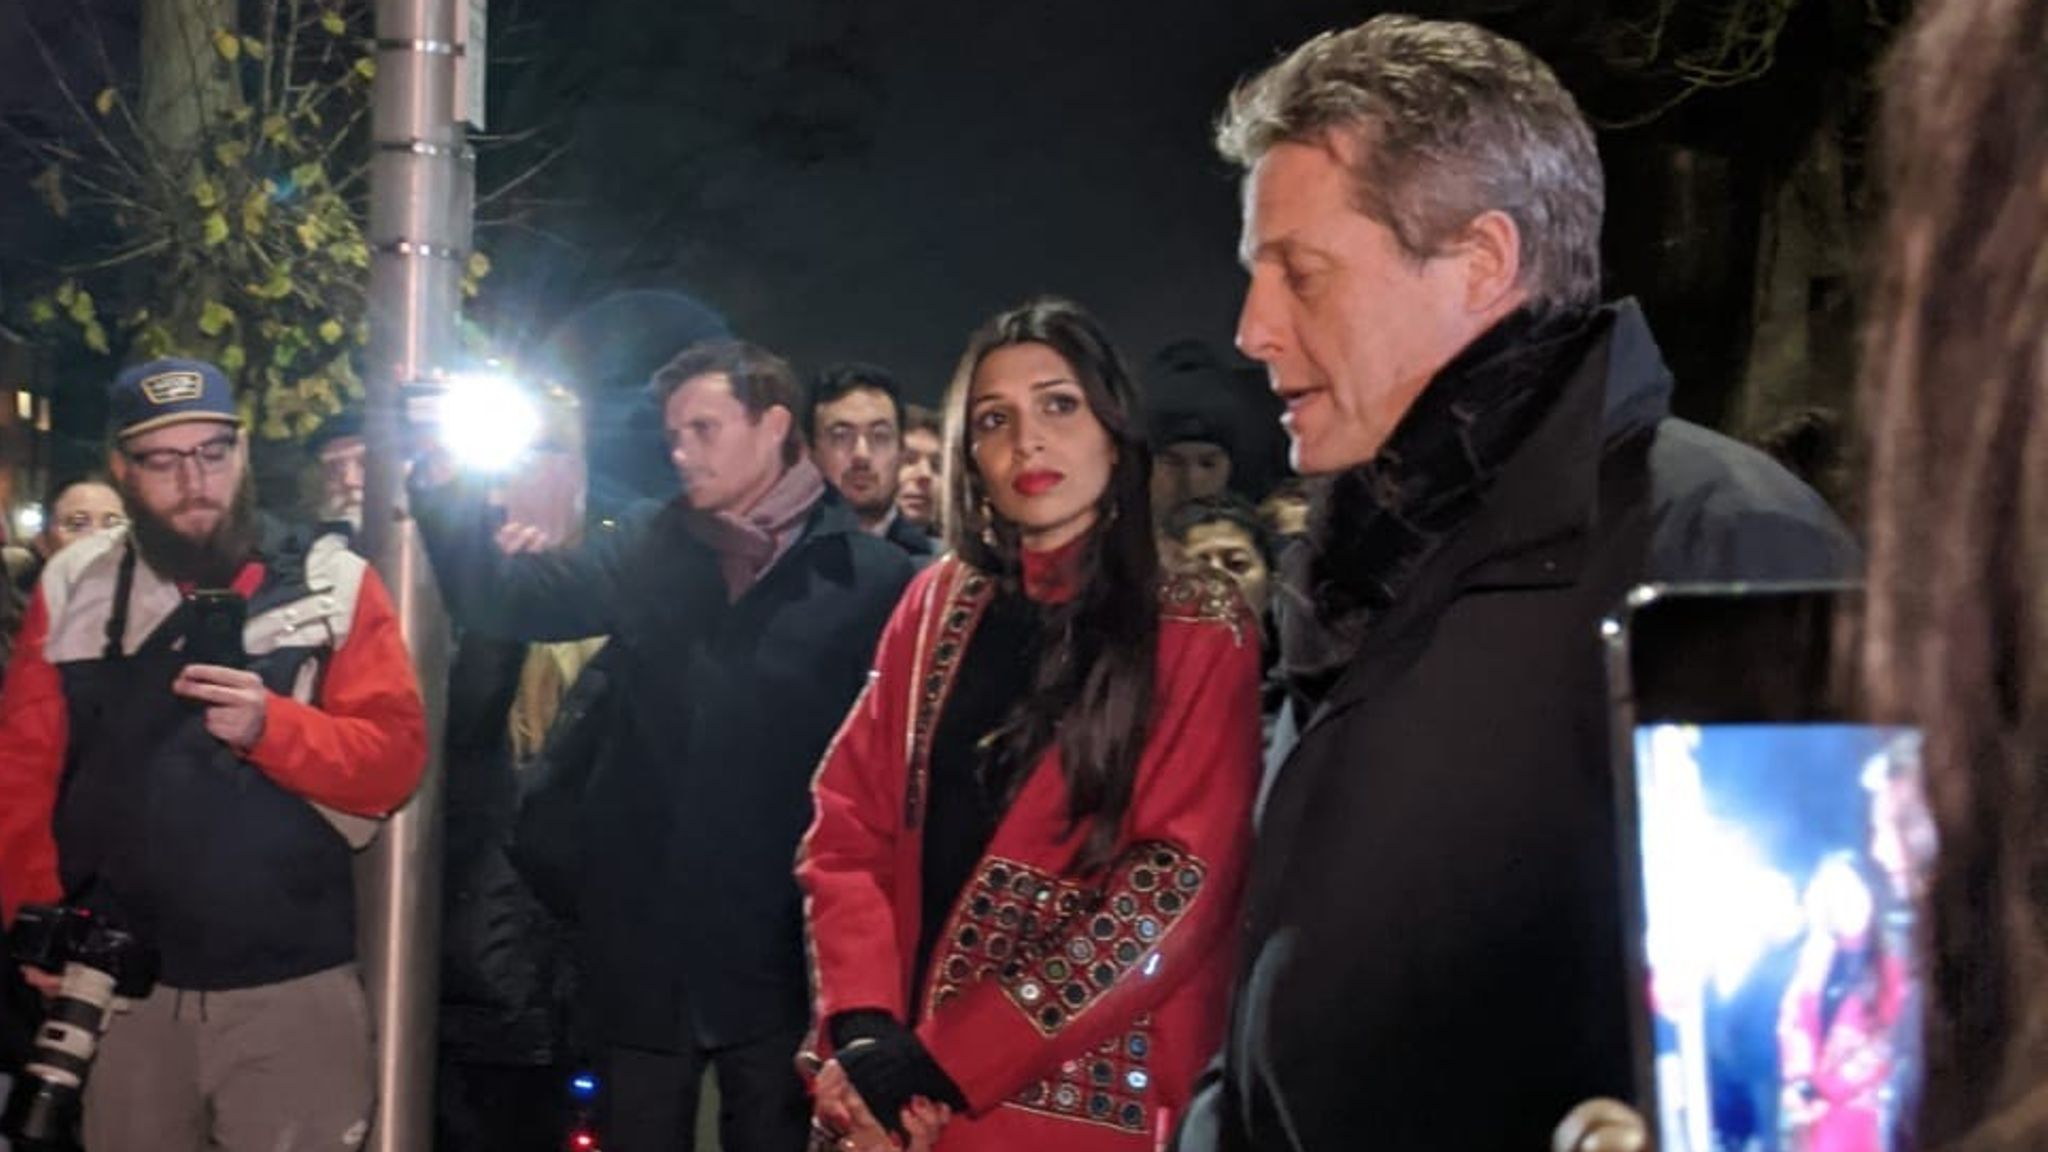 General election: Hugh Grant confronted by anti-racism protesters for backing Labour candidate